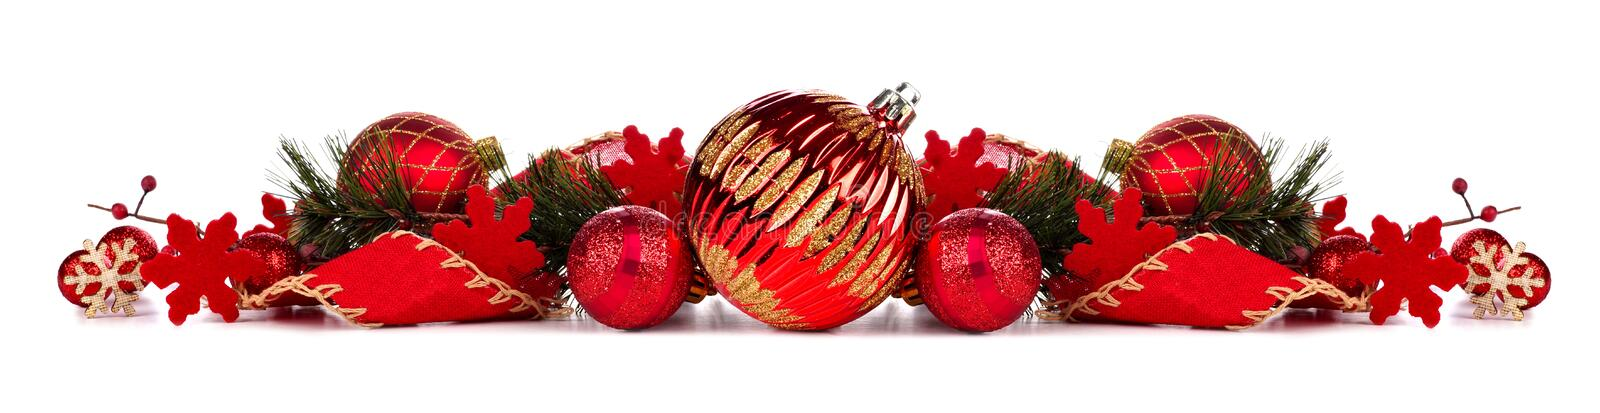 Red Christmas bauble border isolated on white. Christmas border with red baubles, ribbon and branches isolated on a white background stock images